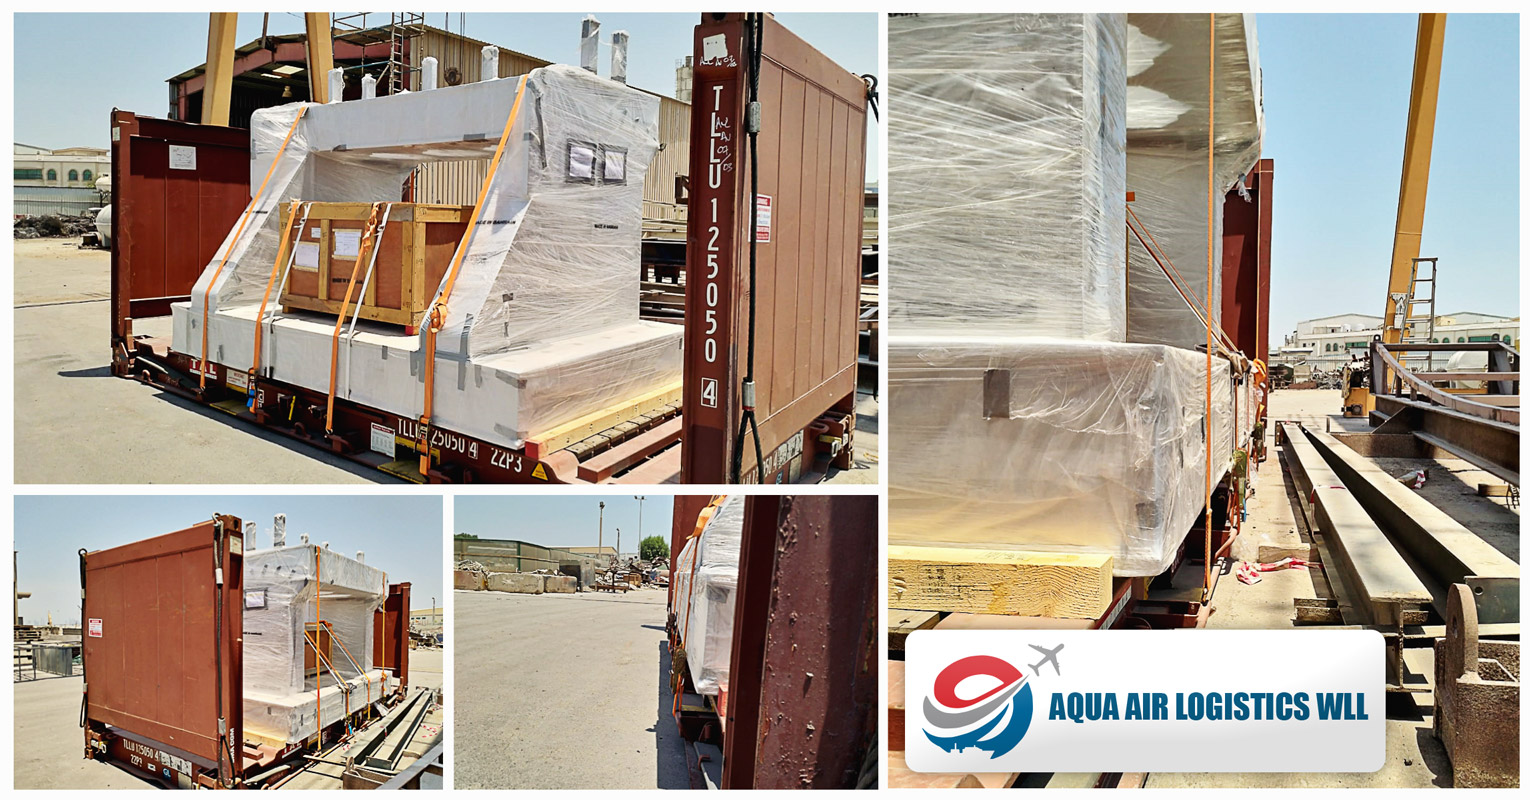 Aqua Air Logistics Loaded Flat Racks from Bahrain to Peru via CMA CGM